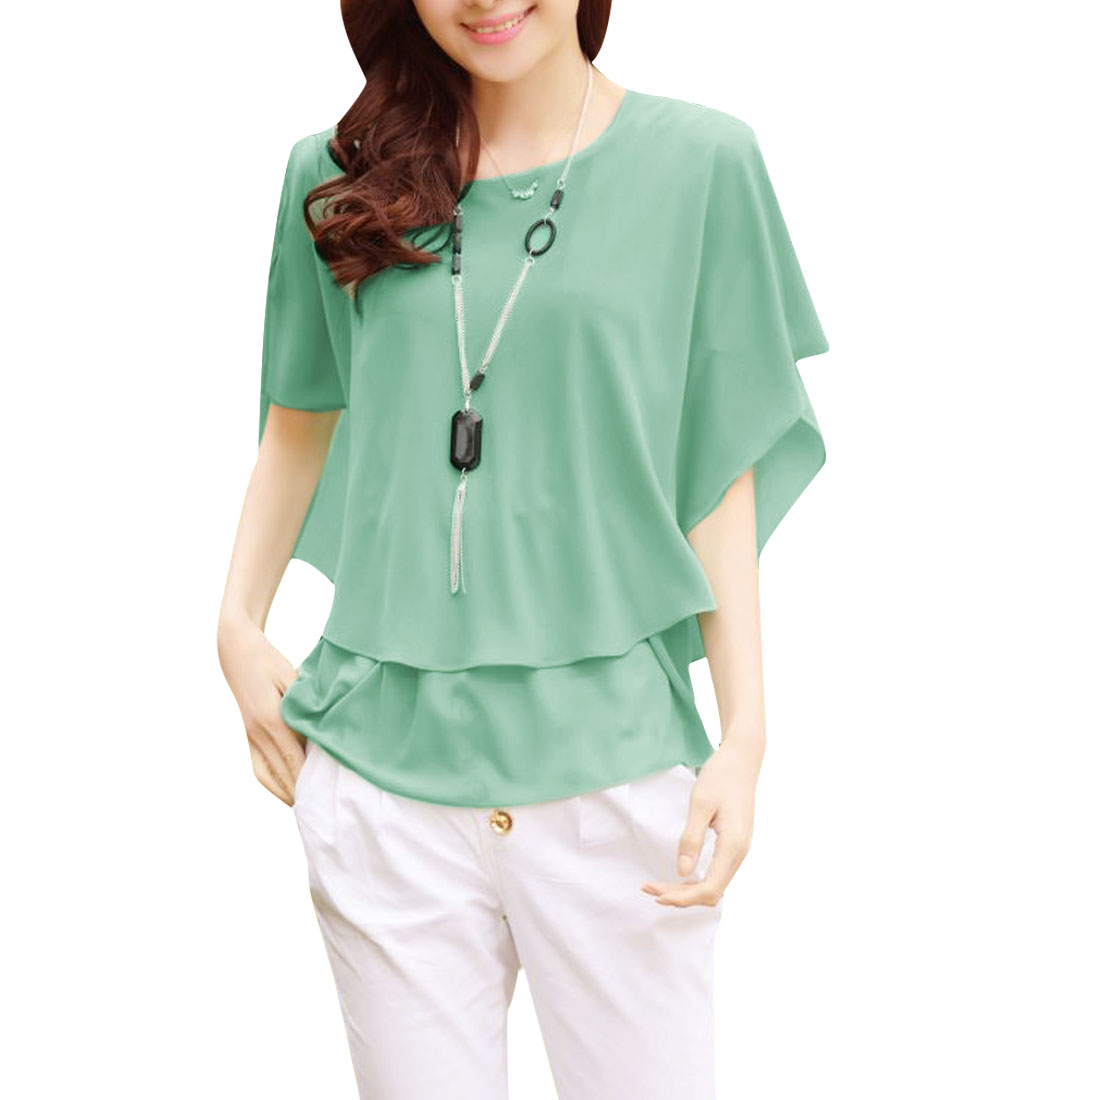 Women Round Neck Chiffon Short-sleeved Loose Flare Shirt Light Green S